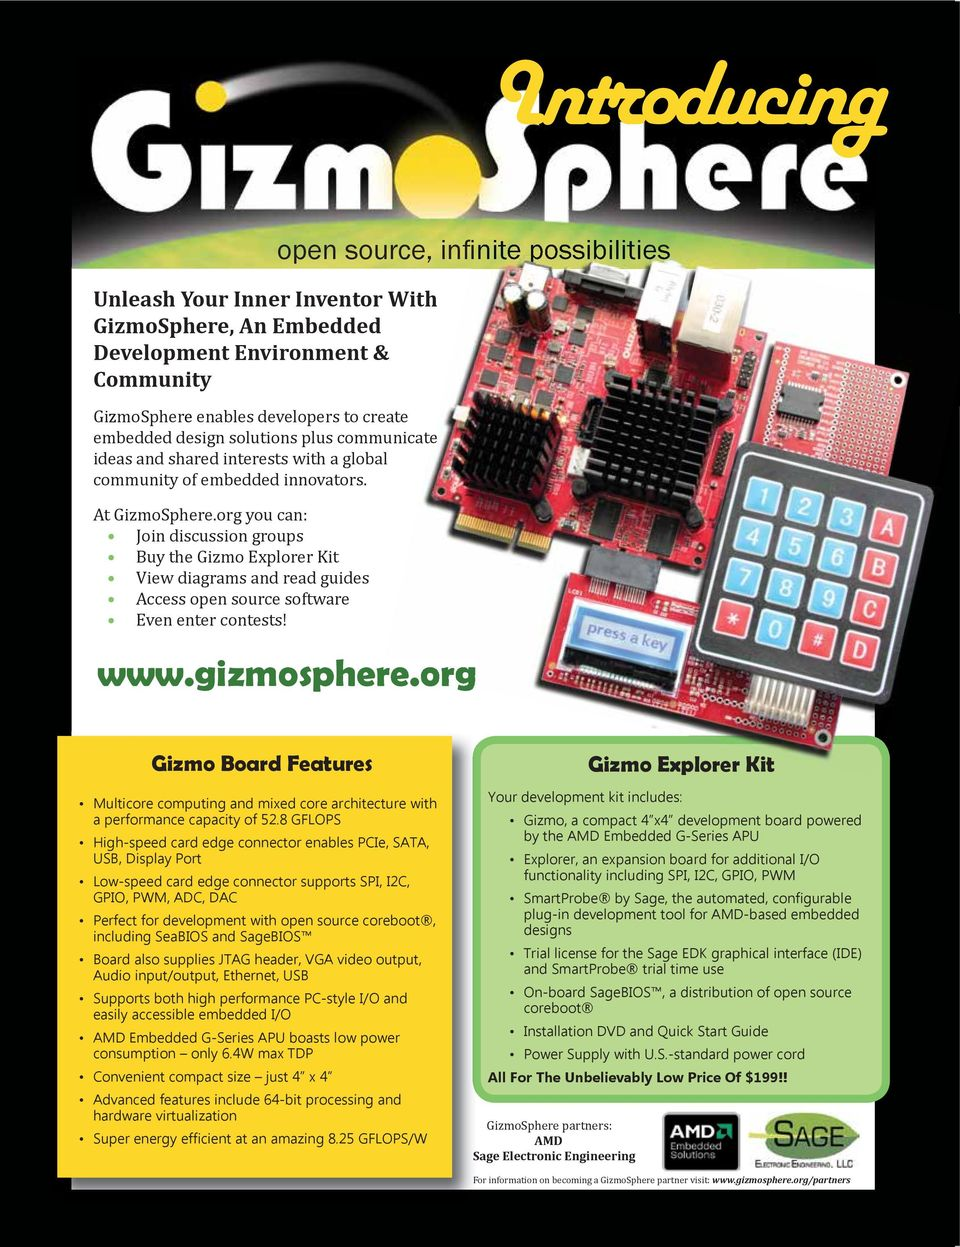 org you can: Join discussion groups Buy the Gizmo Explorer Kit View diagrams and read guides Access open source software Even enter contests! open source, infi nite possibilities www.gizmosphere.